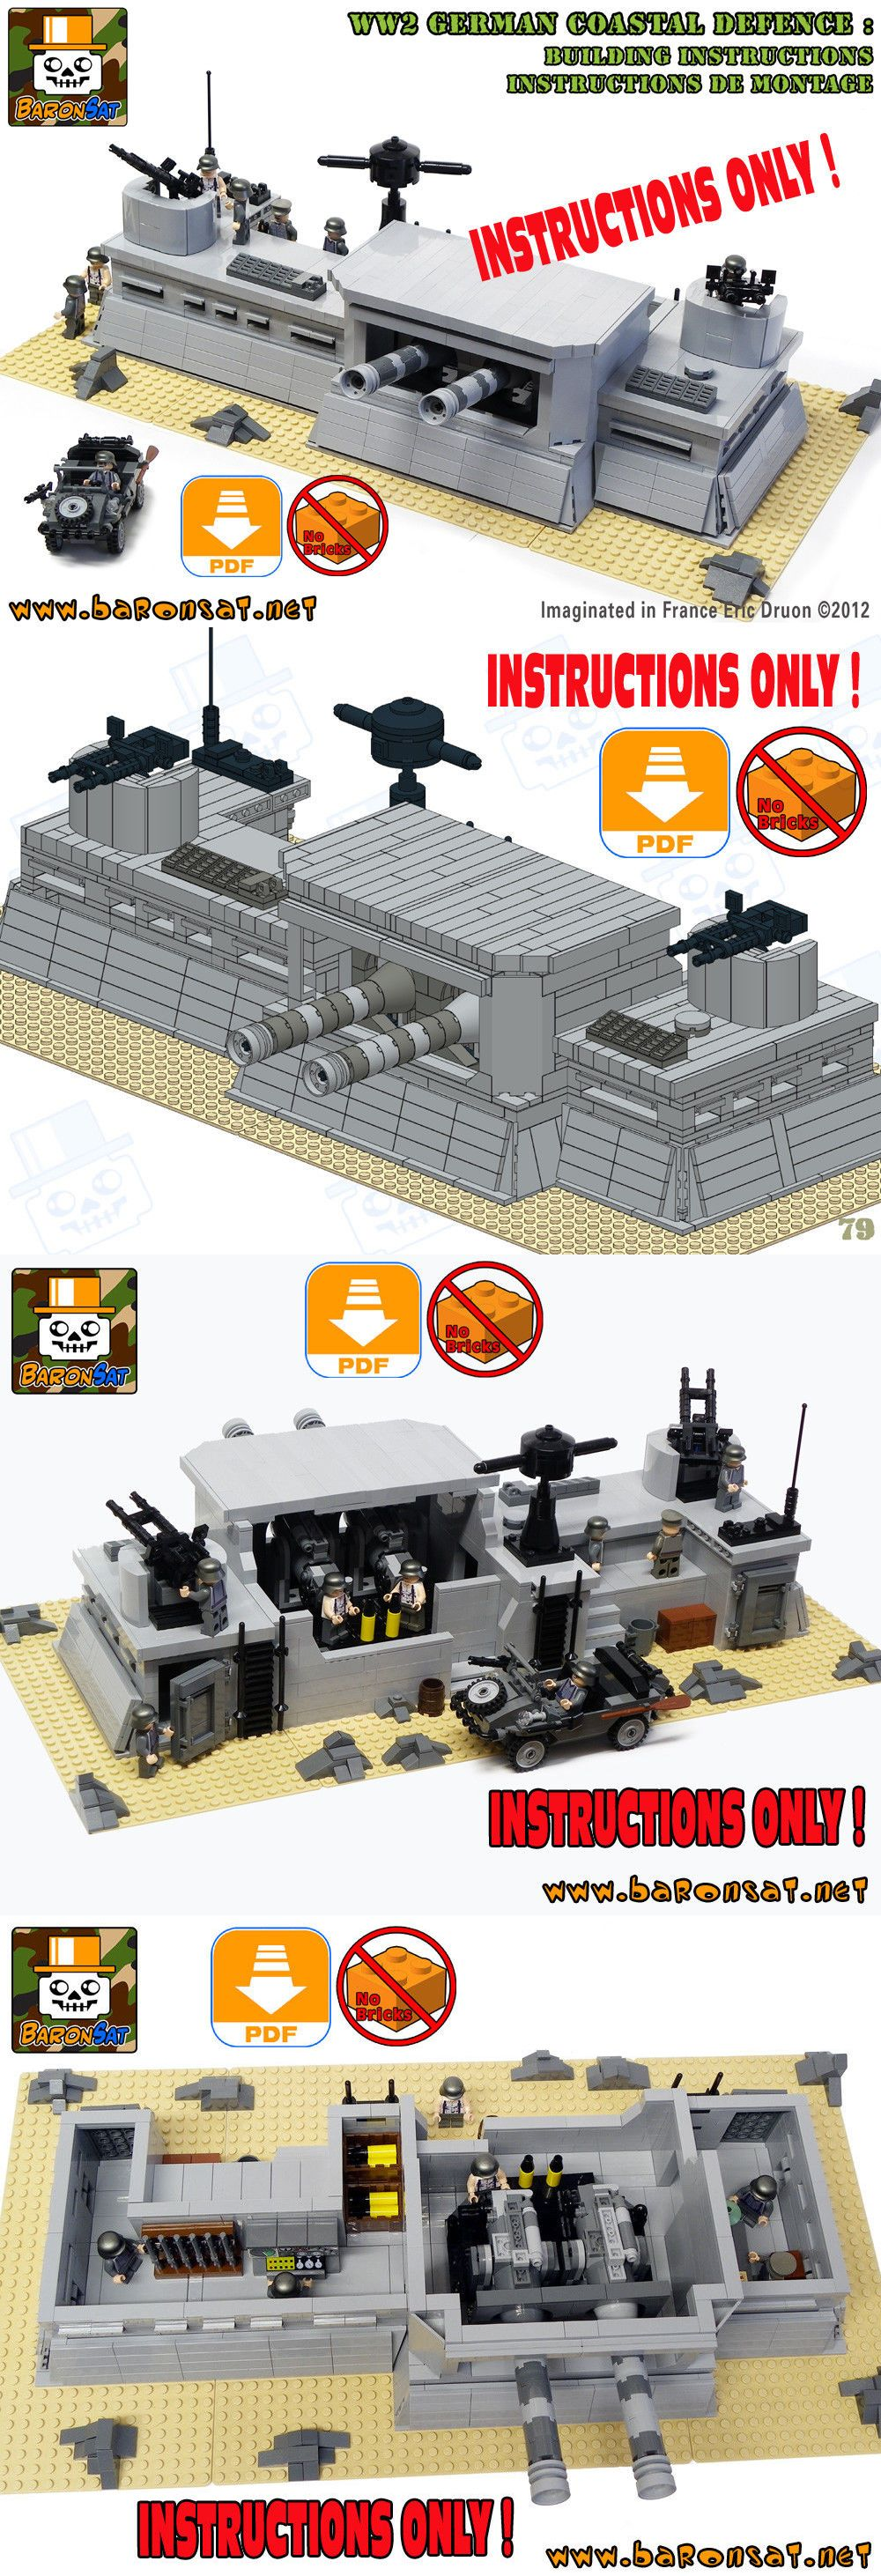 Pin On Lego Instruction Manuals 183449